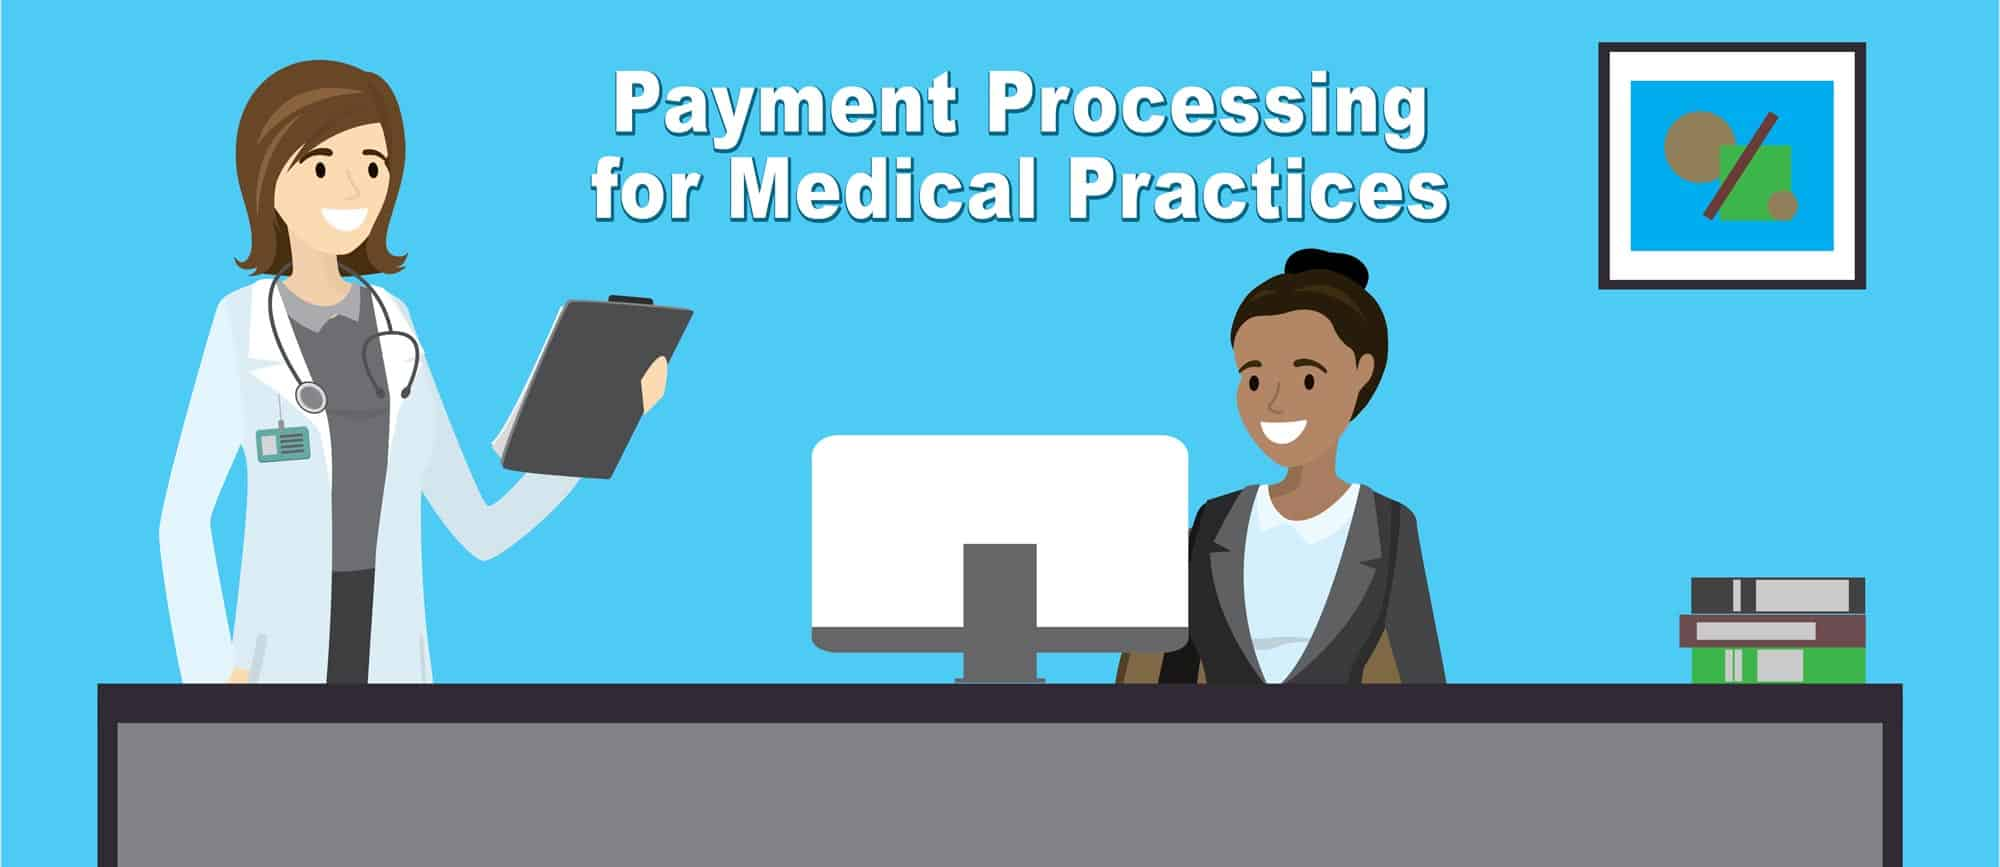 Payment Processing for Medical Practices